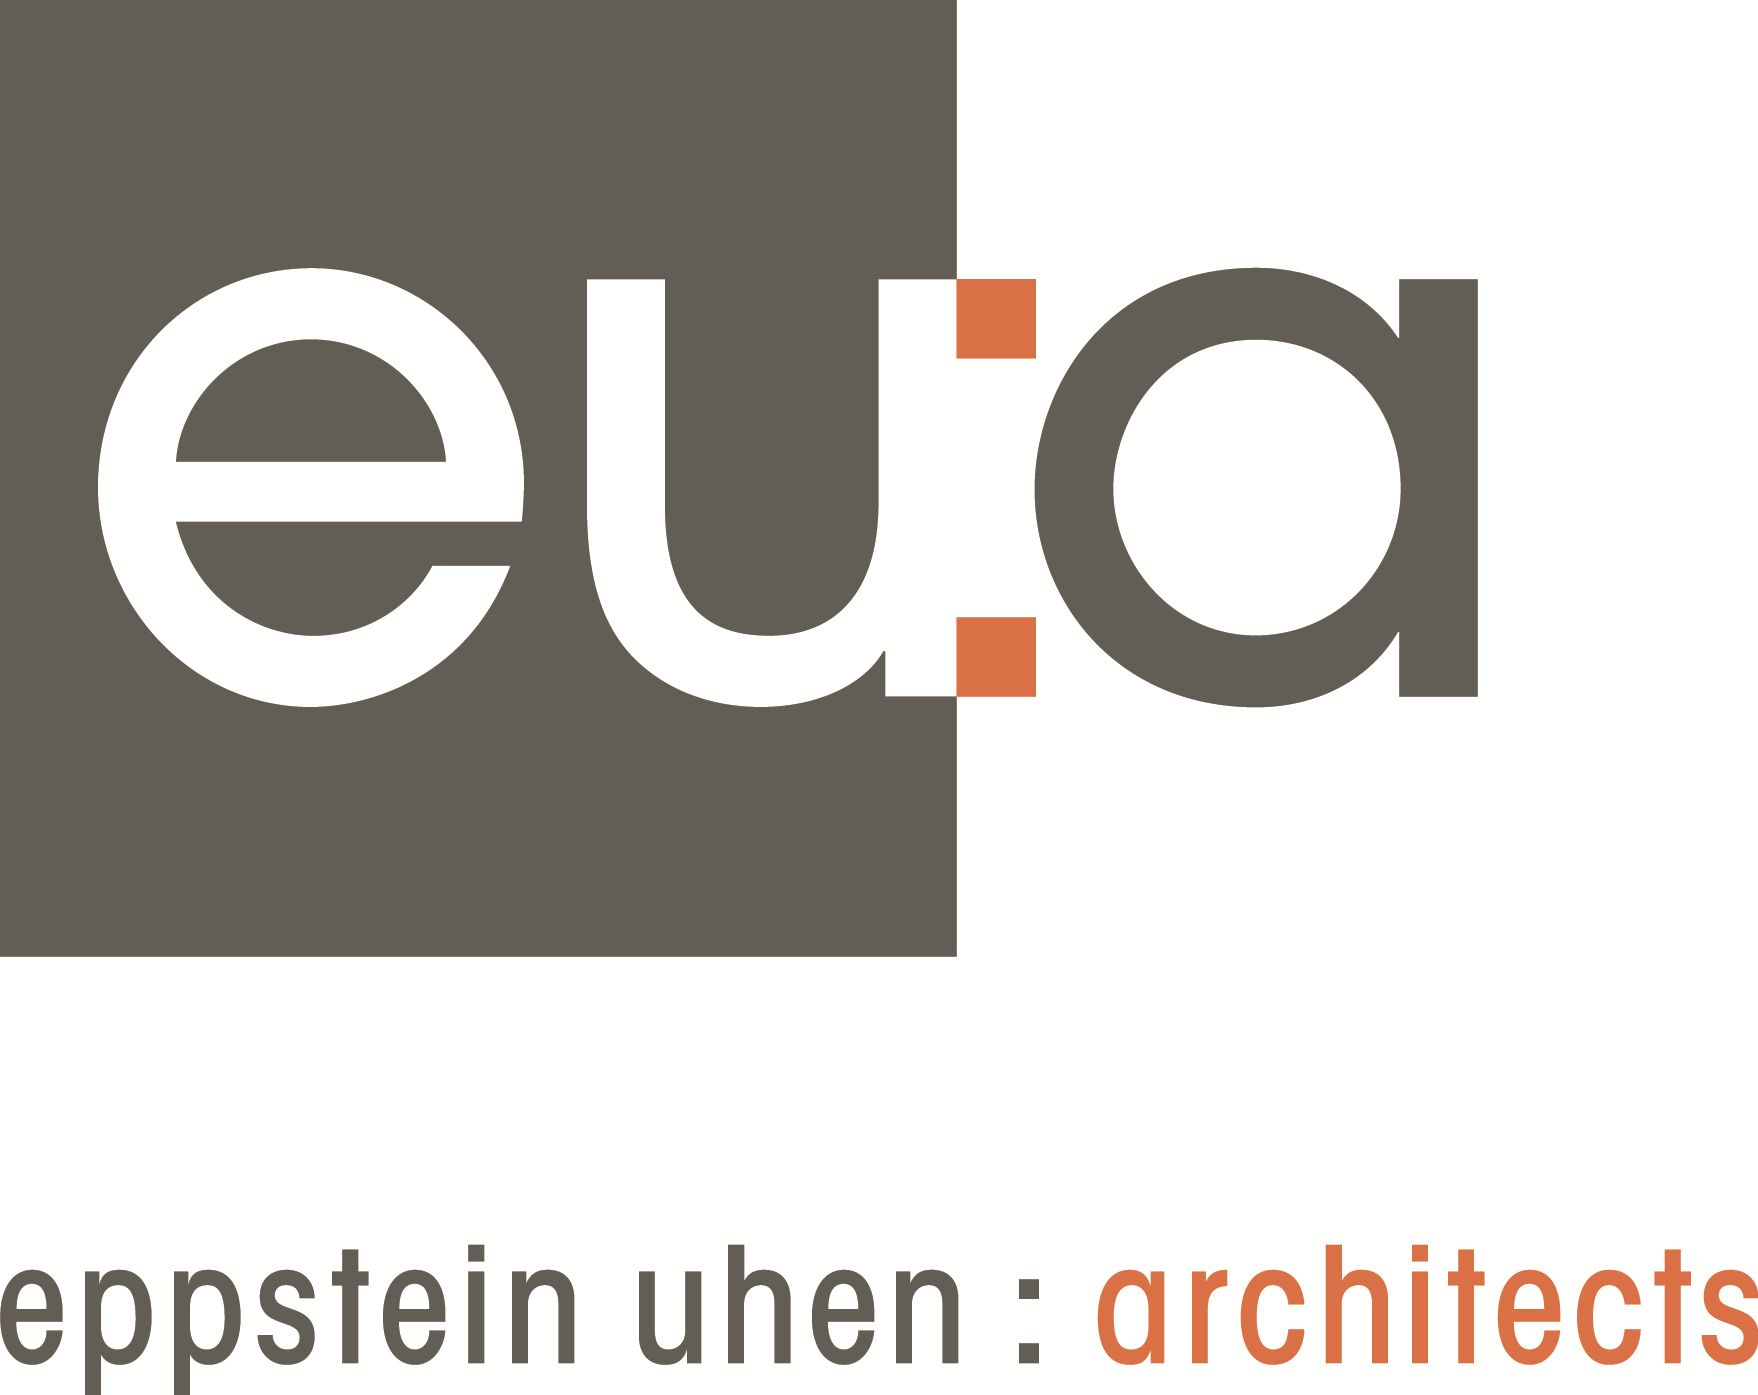 image of Eppstein Uhen Architects logo